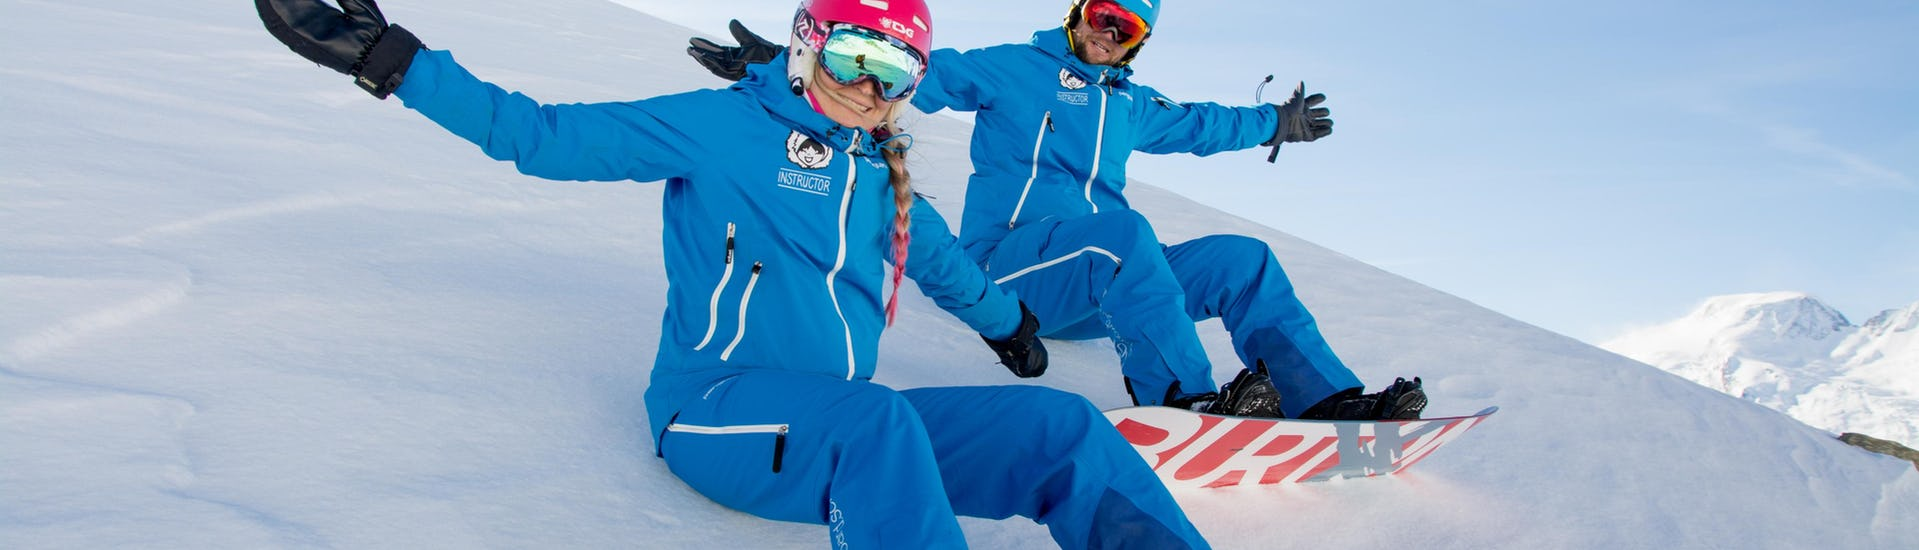 Snowboard Instructor Private for Adults & Kids - All Levels